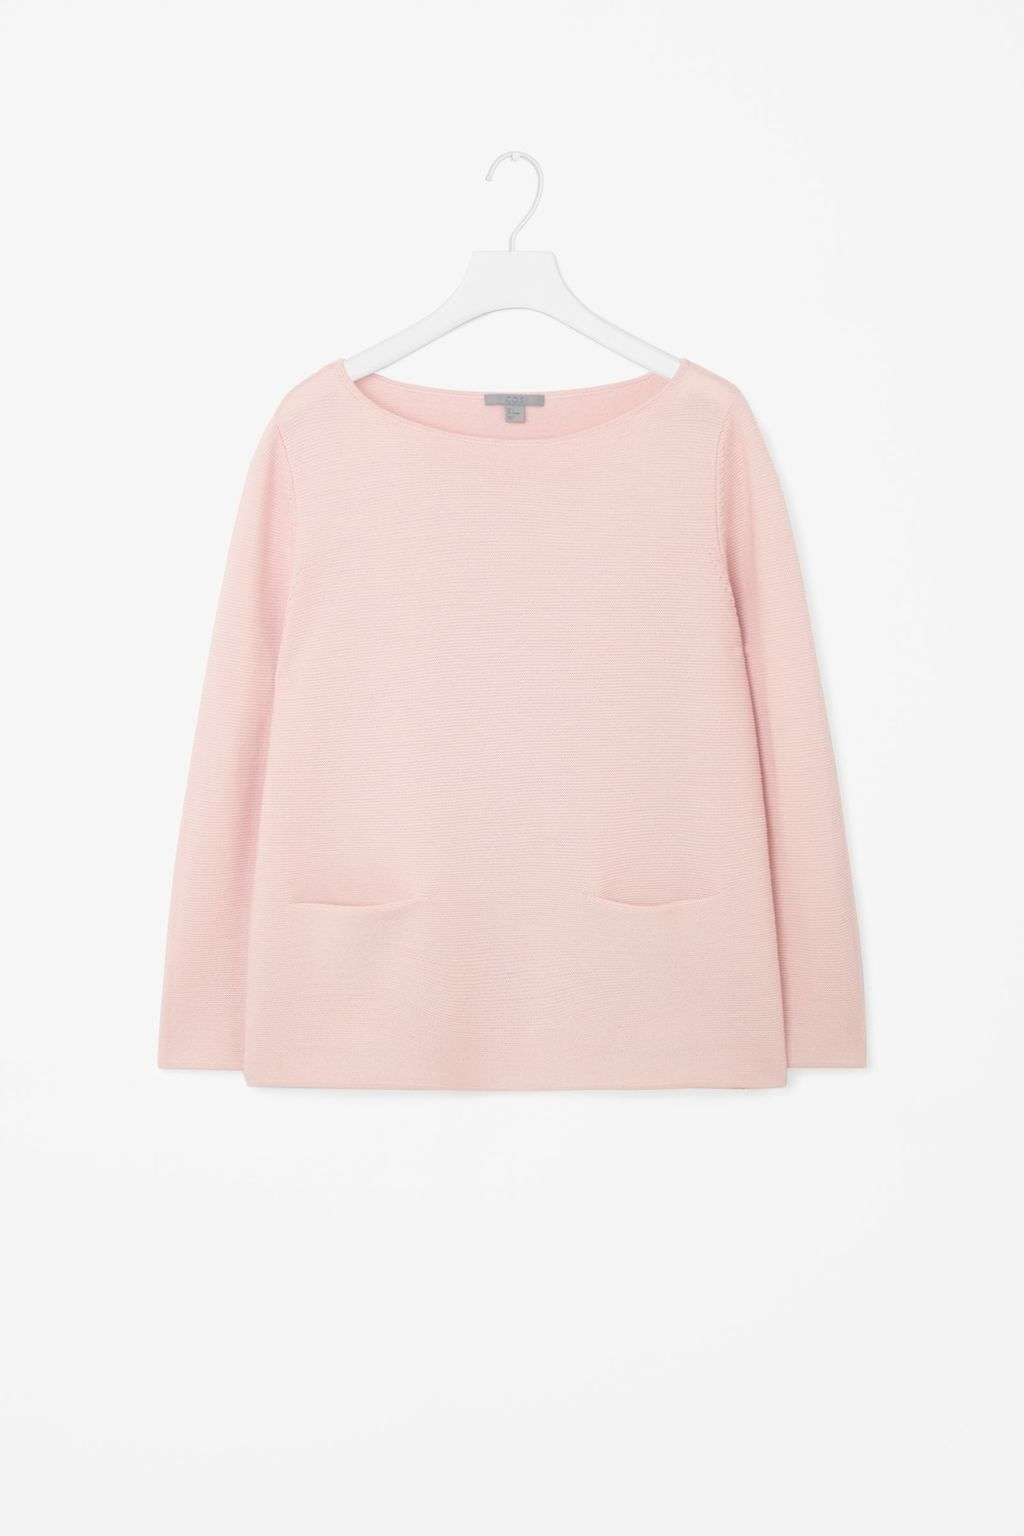 A Line Wool Jumper - neckline: round neck; pattern: plain; style: standard; predominant colour: blush; occasions: casual; length: standard; fibres: wool - 100%; fit: standard fit; sleeve length: long sleeve; sleeve style: standard; texture group: knits/crochet; pattern type: fabric; season: s/s 2016; wardrobe: basic